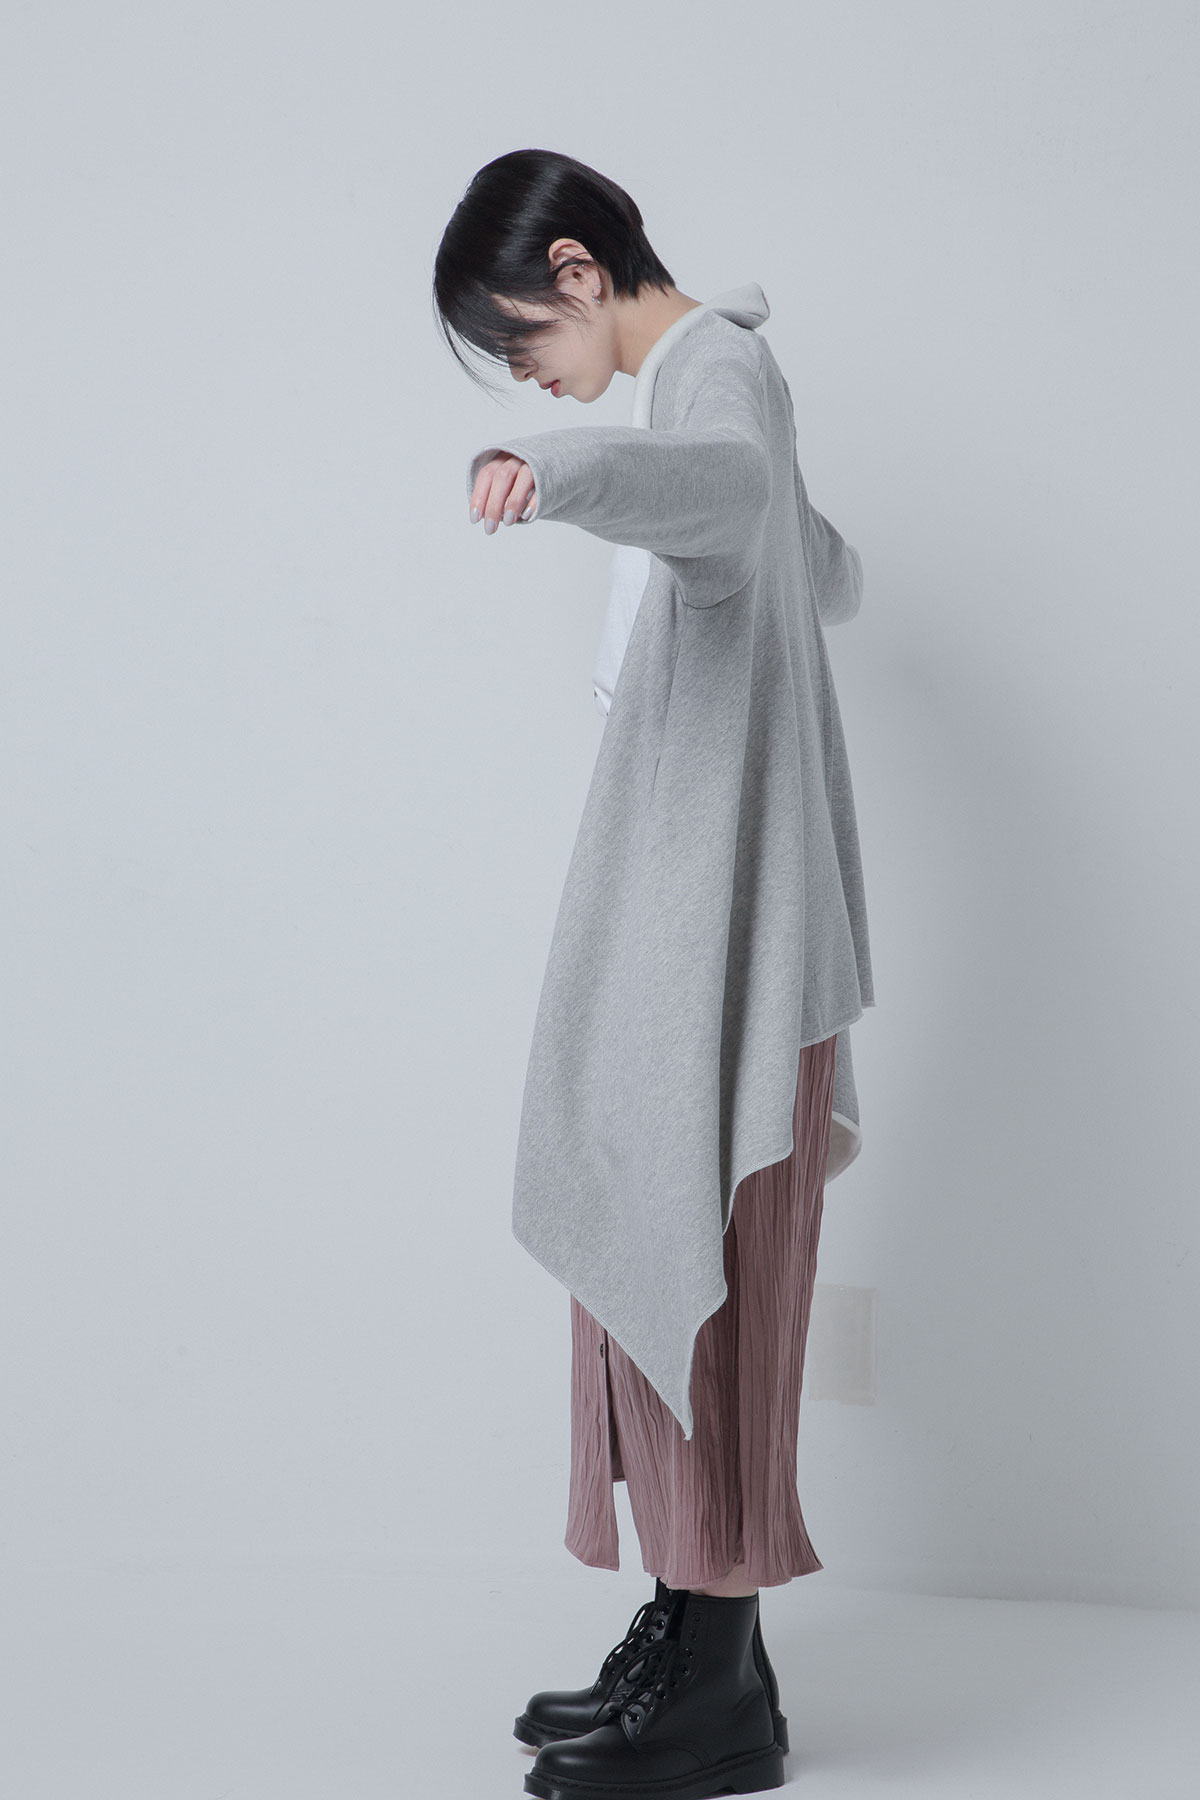 BO205711-gray Furry Liner Sweat Square Gown -GRAY-【BO205711】Del.Oct.